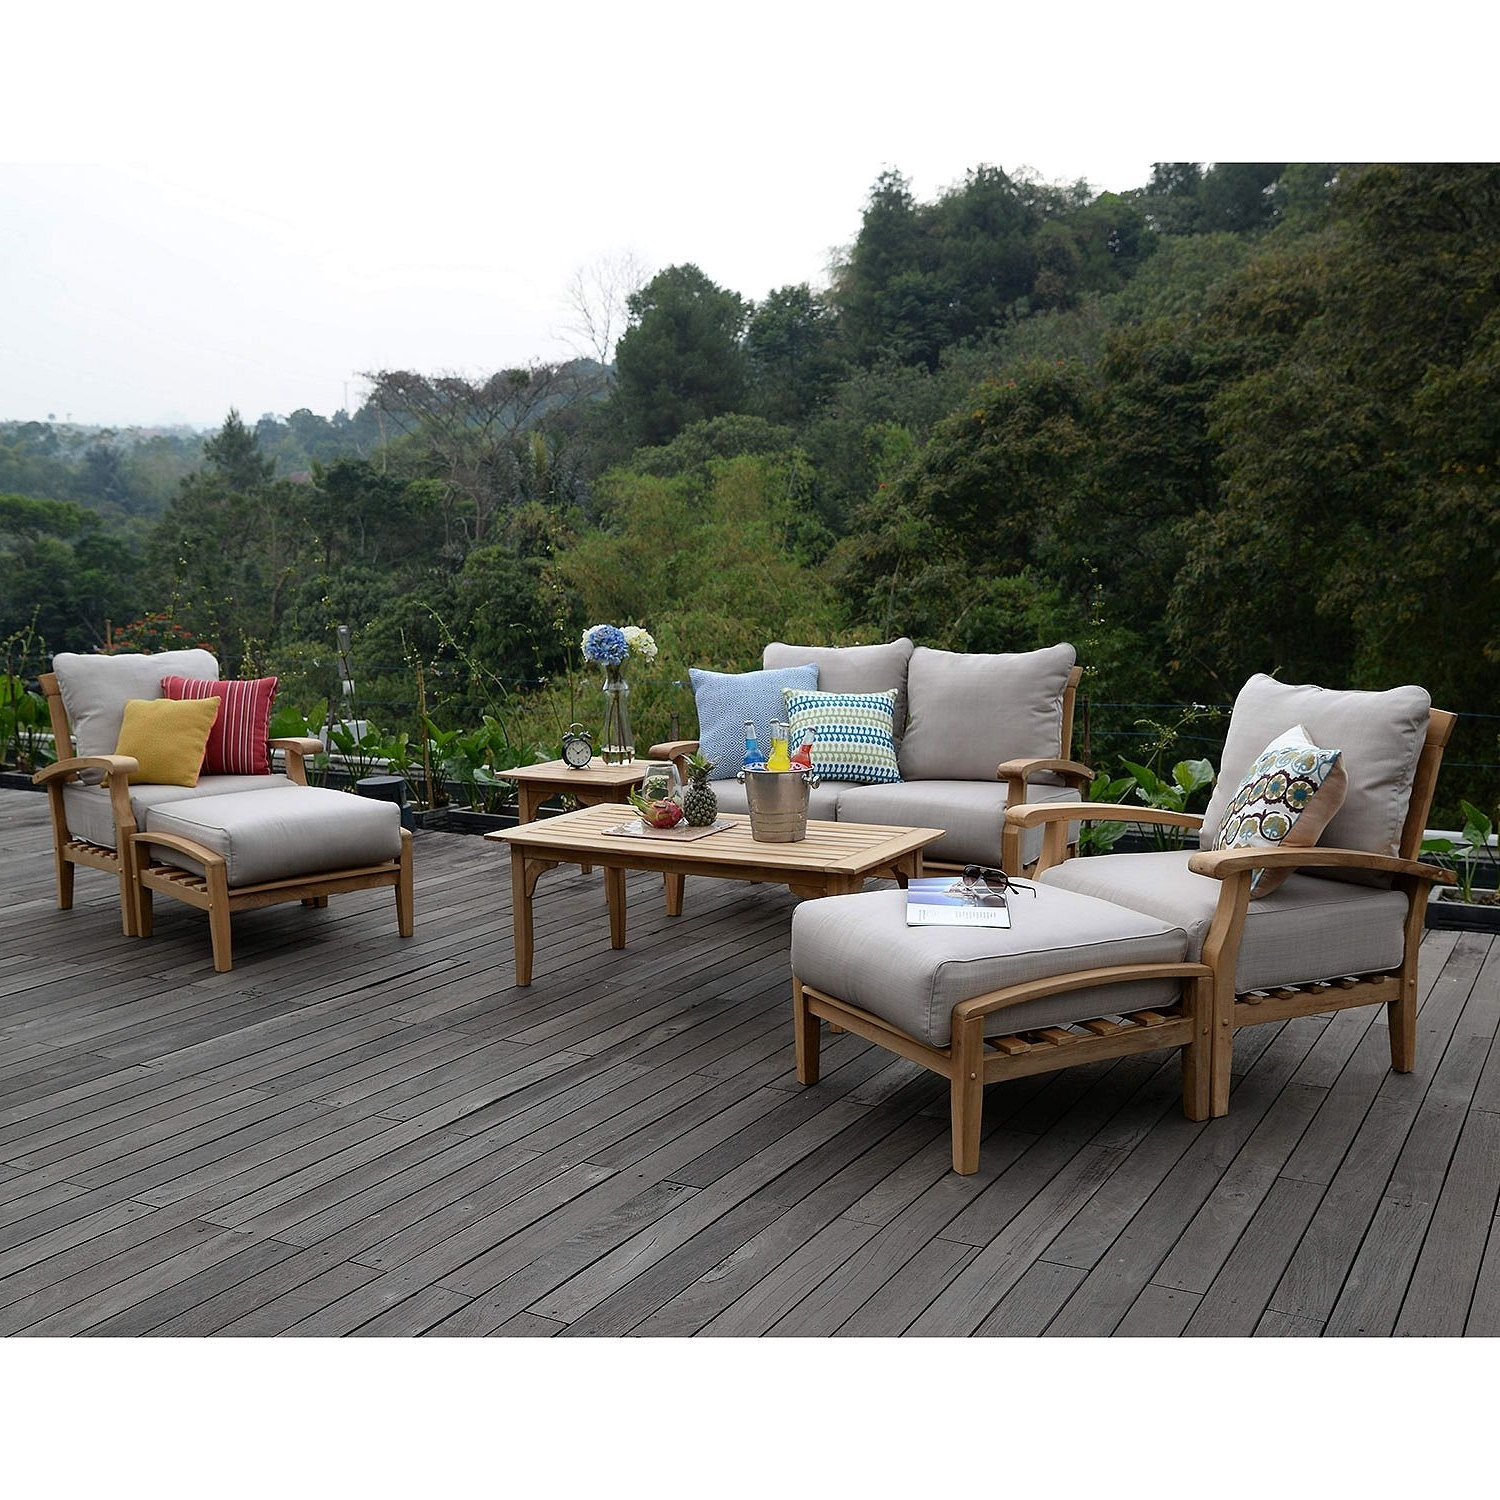 Teak Patio Conversation Sets With Regard To Current Sams Club Teak Patio Furniture – Home Design And Architecture Styles (View 15 of 20)